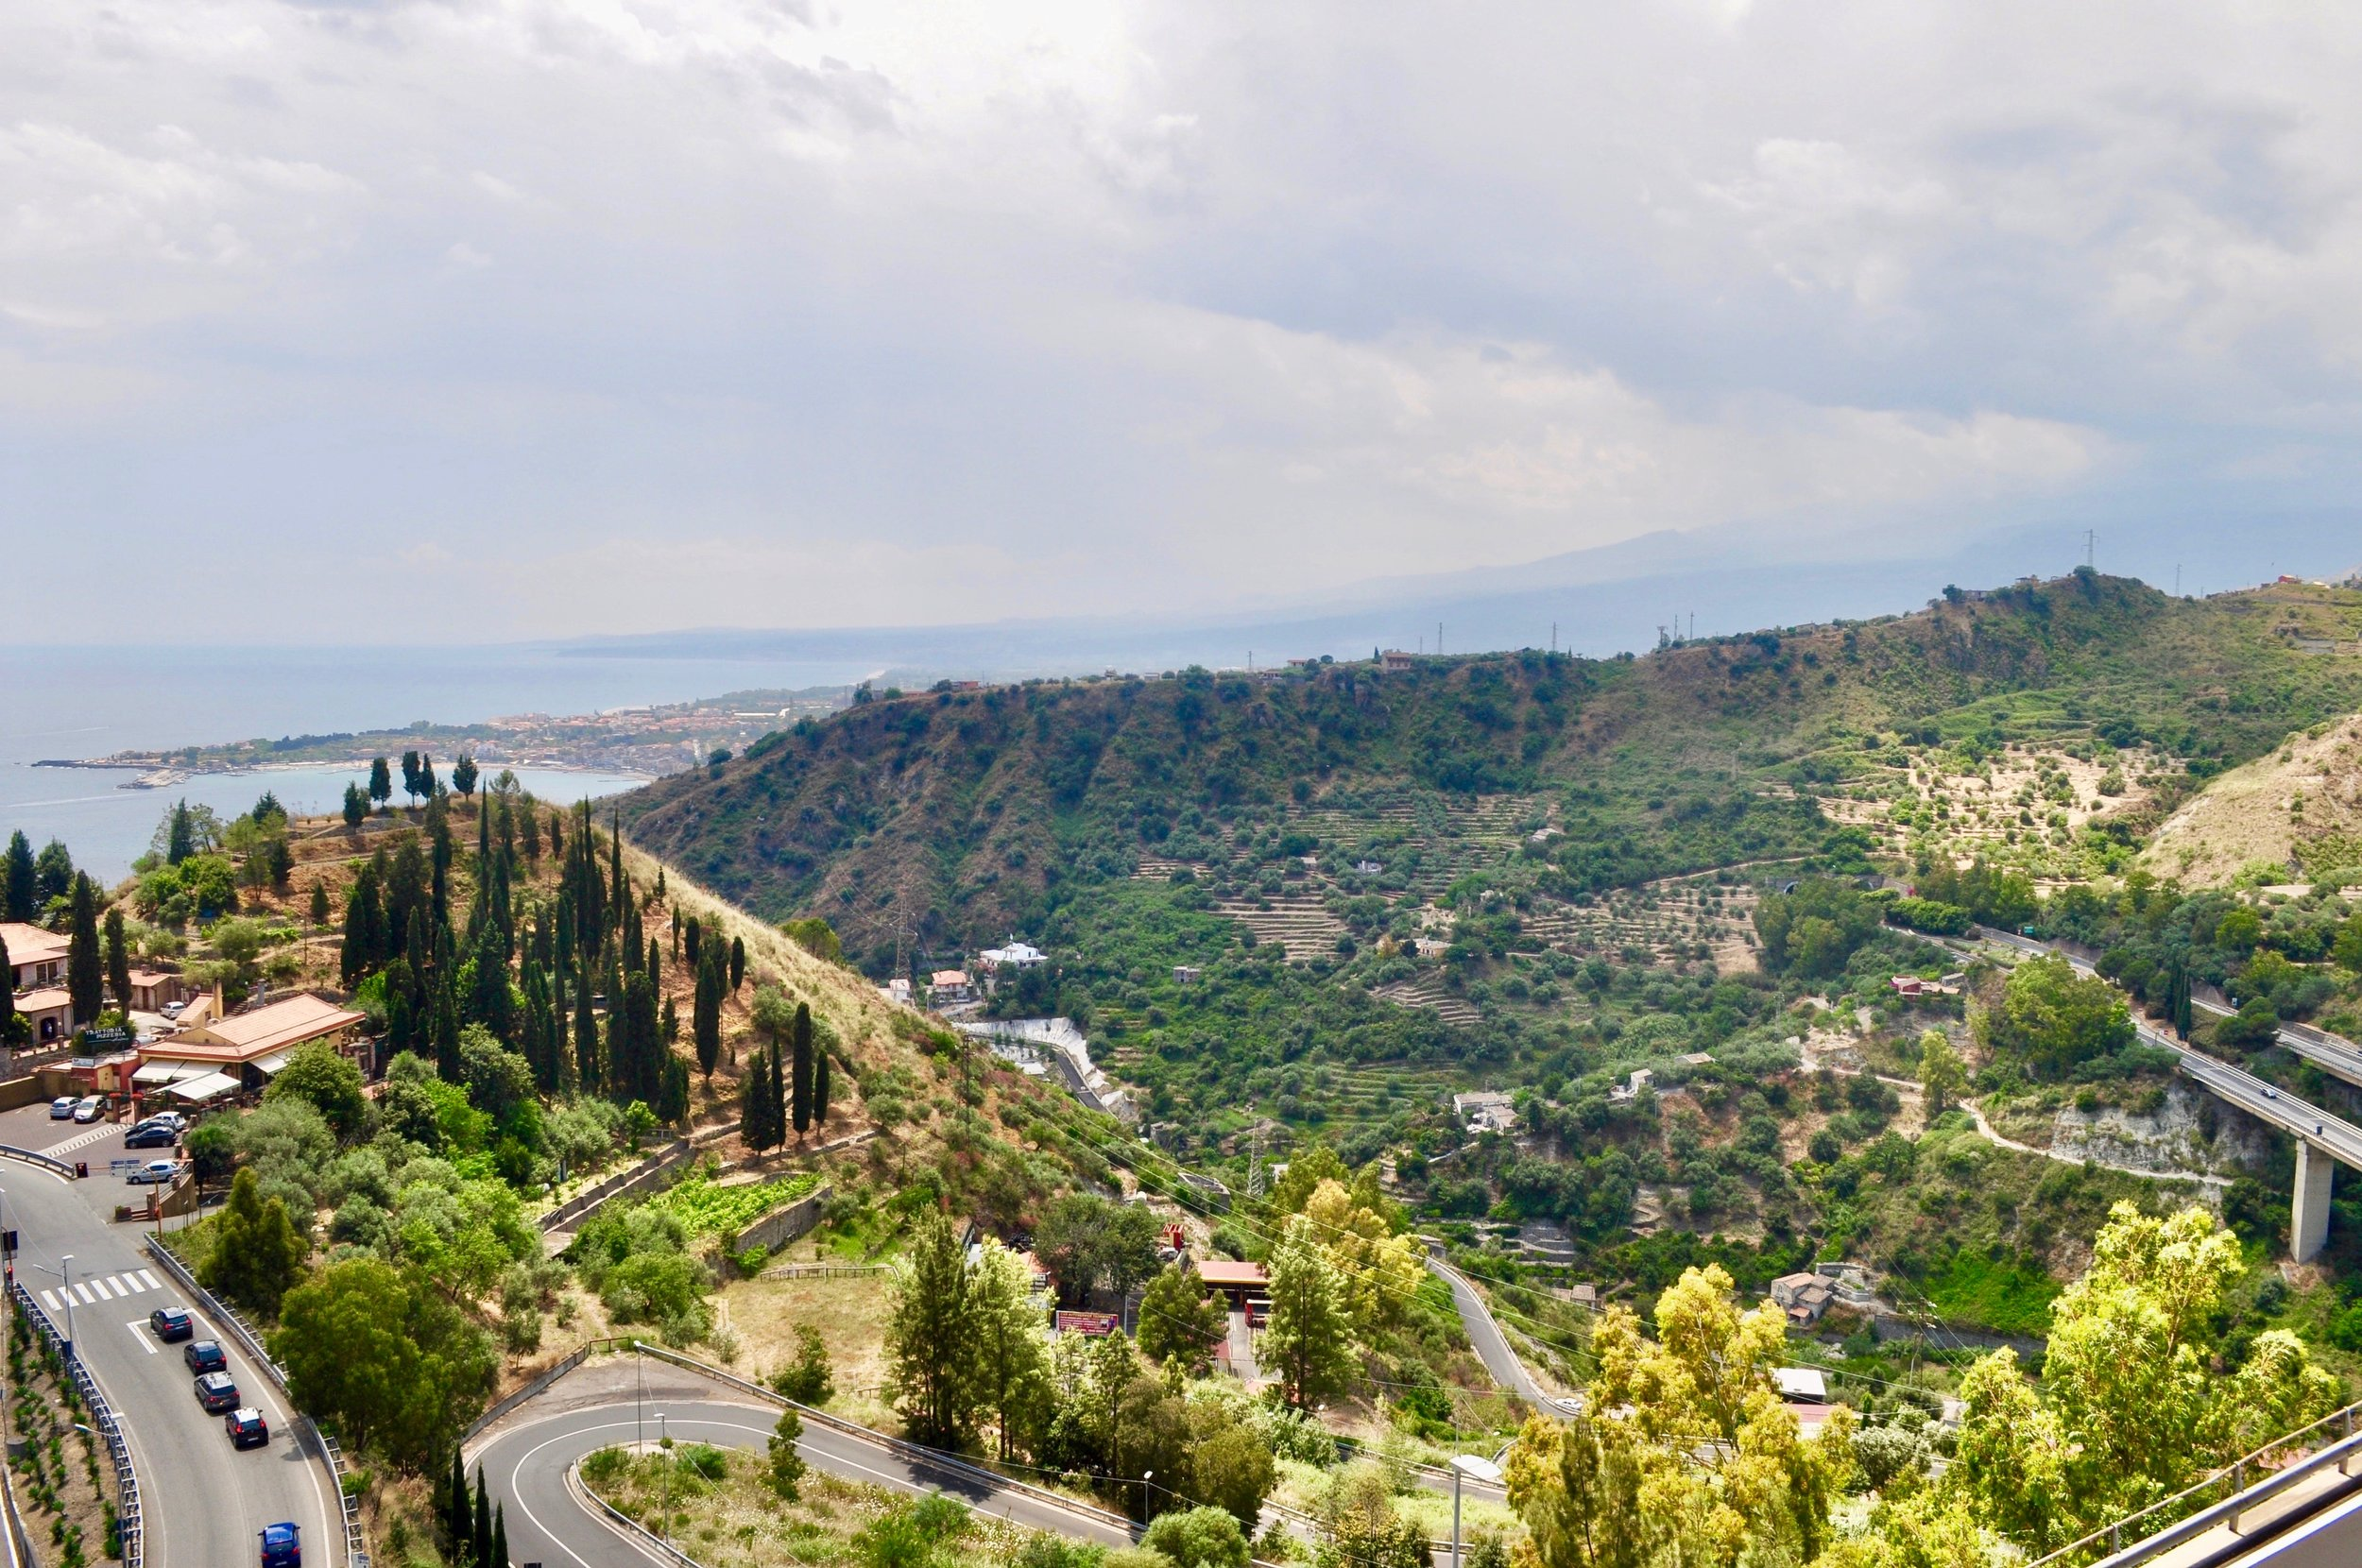 The drive to Taormina from Messina is scenic, but slightly scary, especially in a large bus.